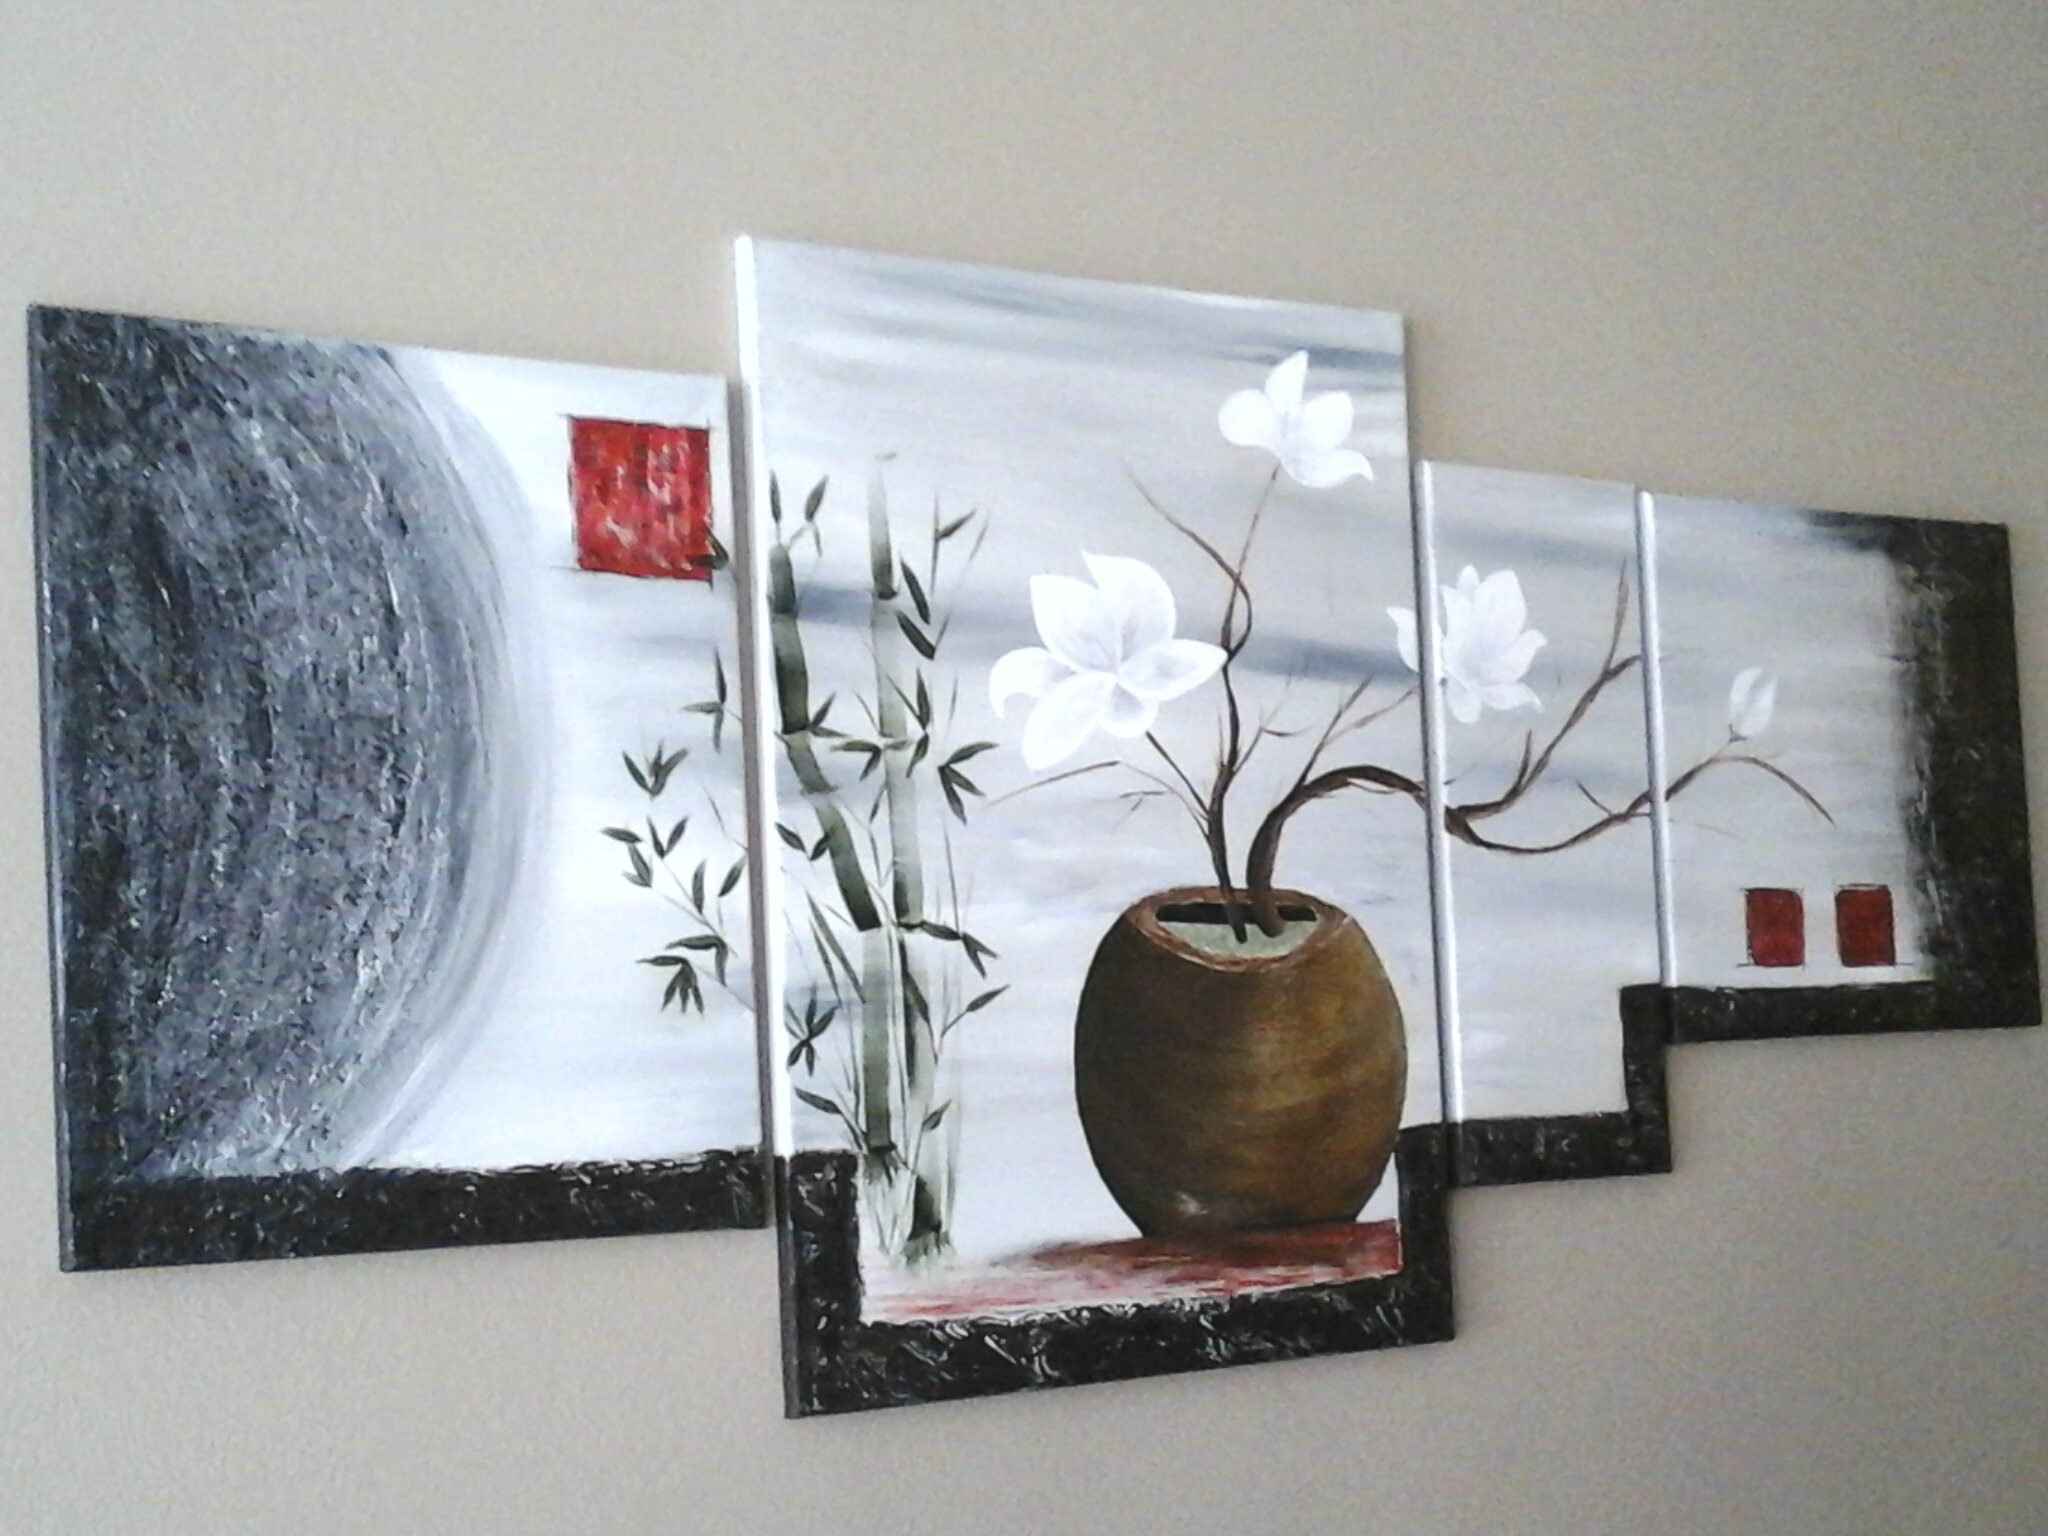 tableau quadriptyque zen la peinture en abstrait. Black Bedroom Furniture Sets. Home Design Ideas